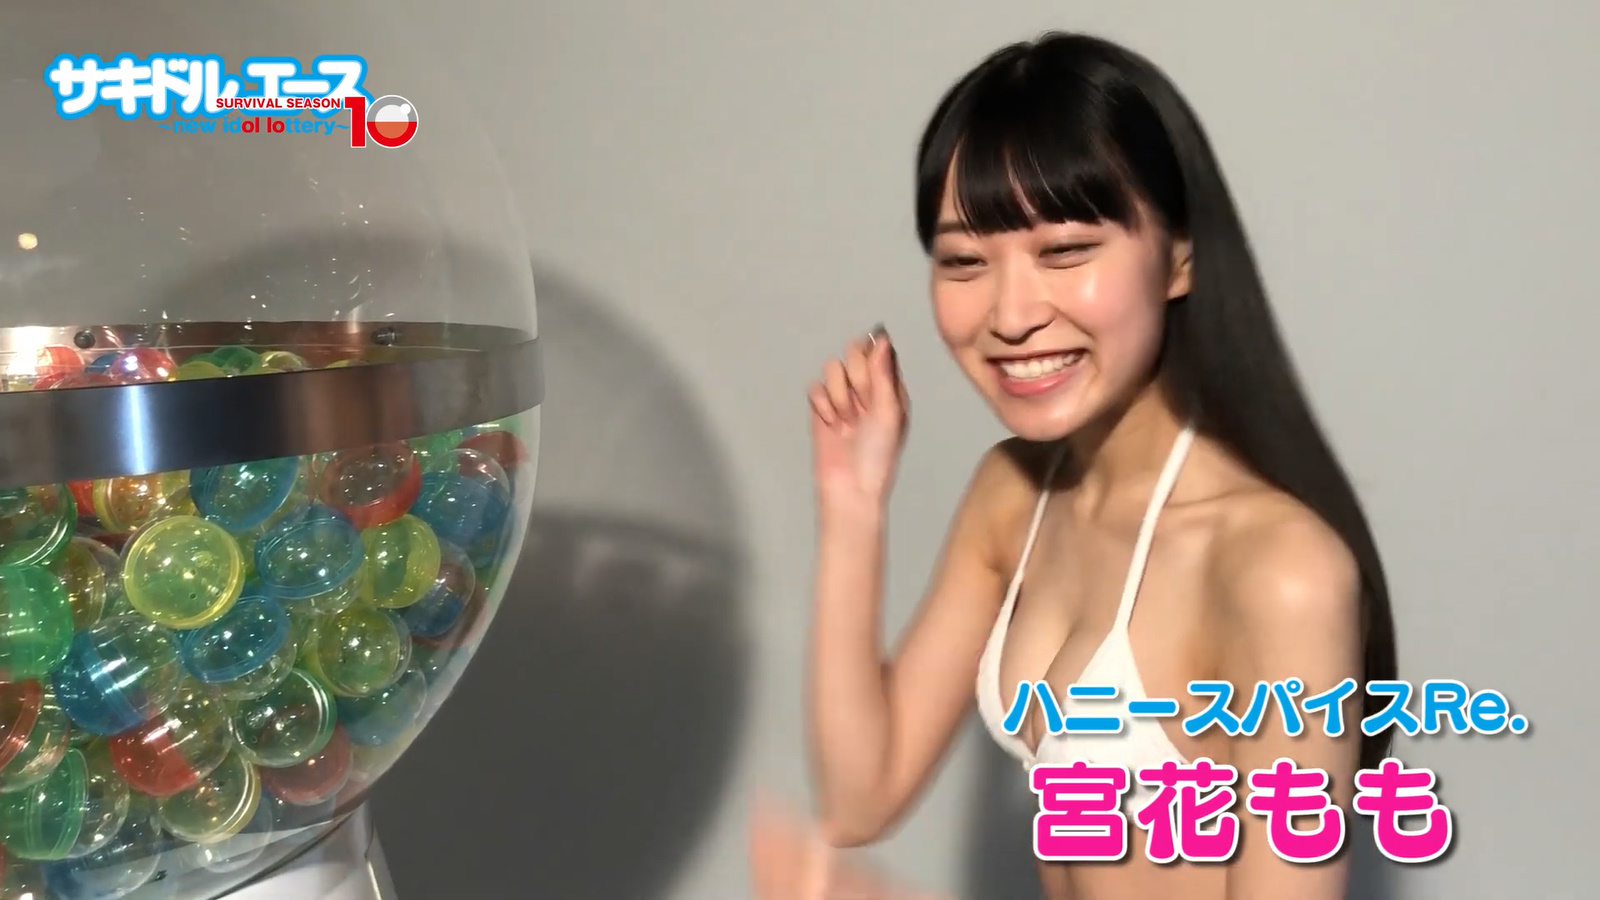 Sakidol Ace 10 Introduction Movie Capture of Swimsuit018